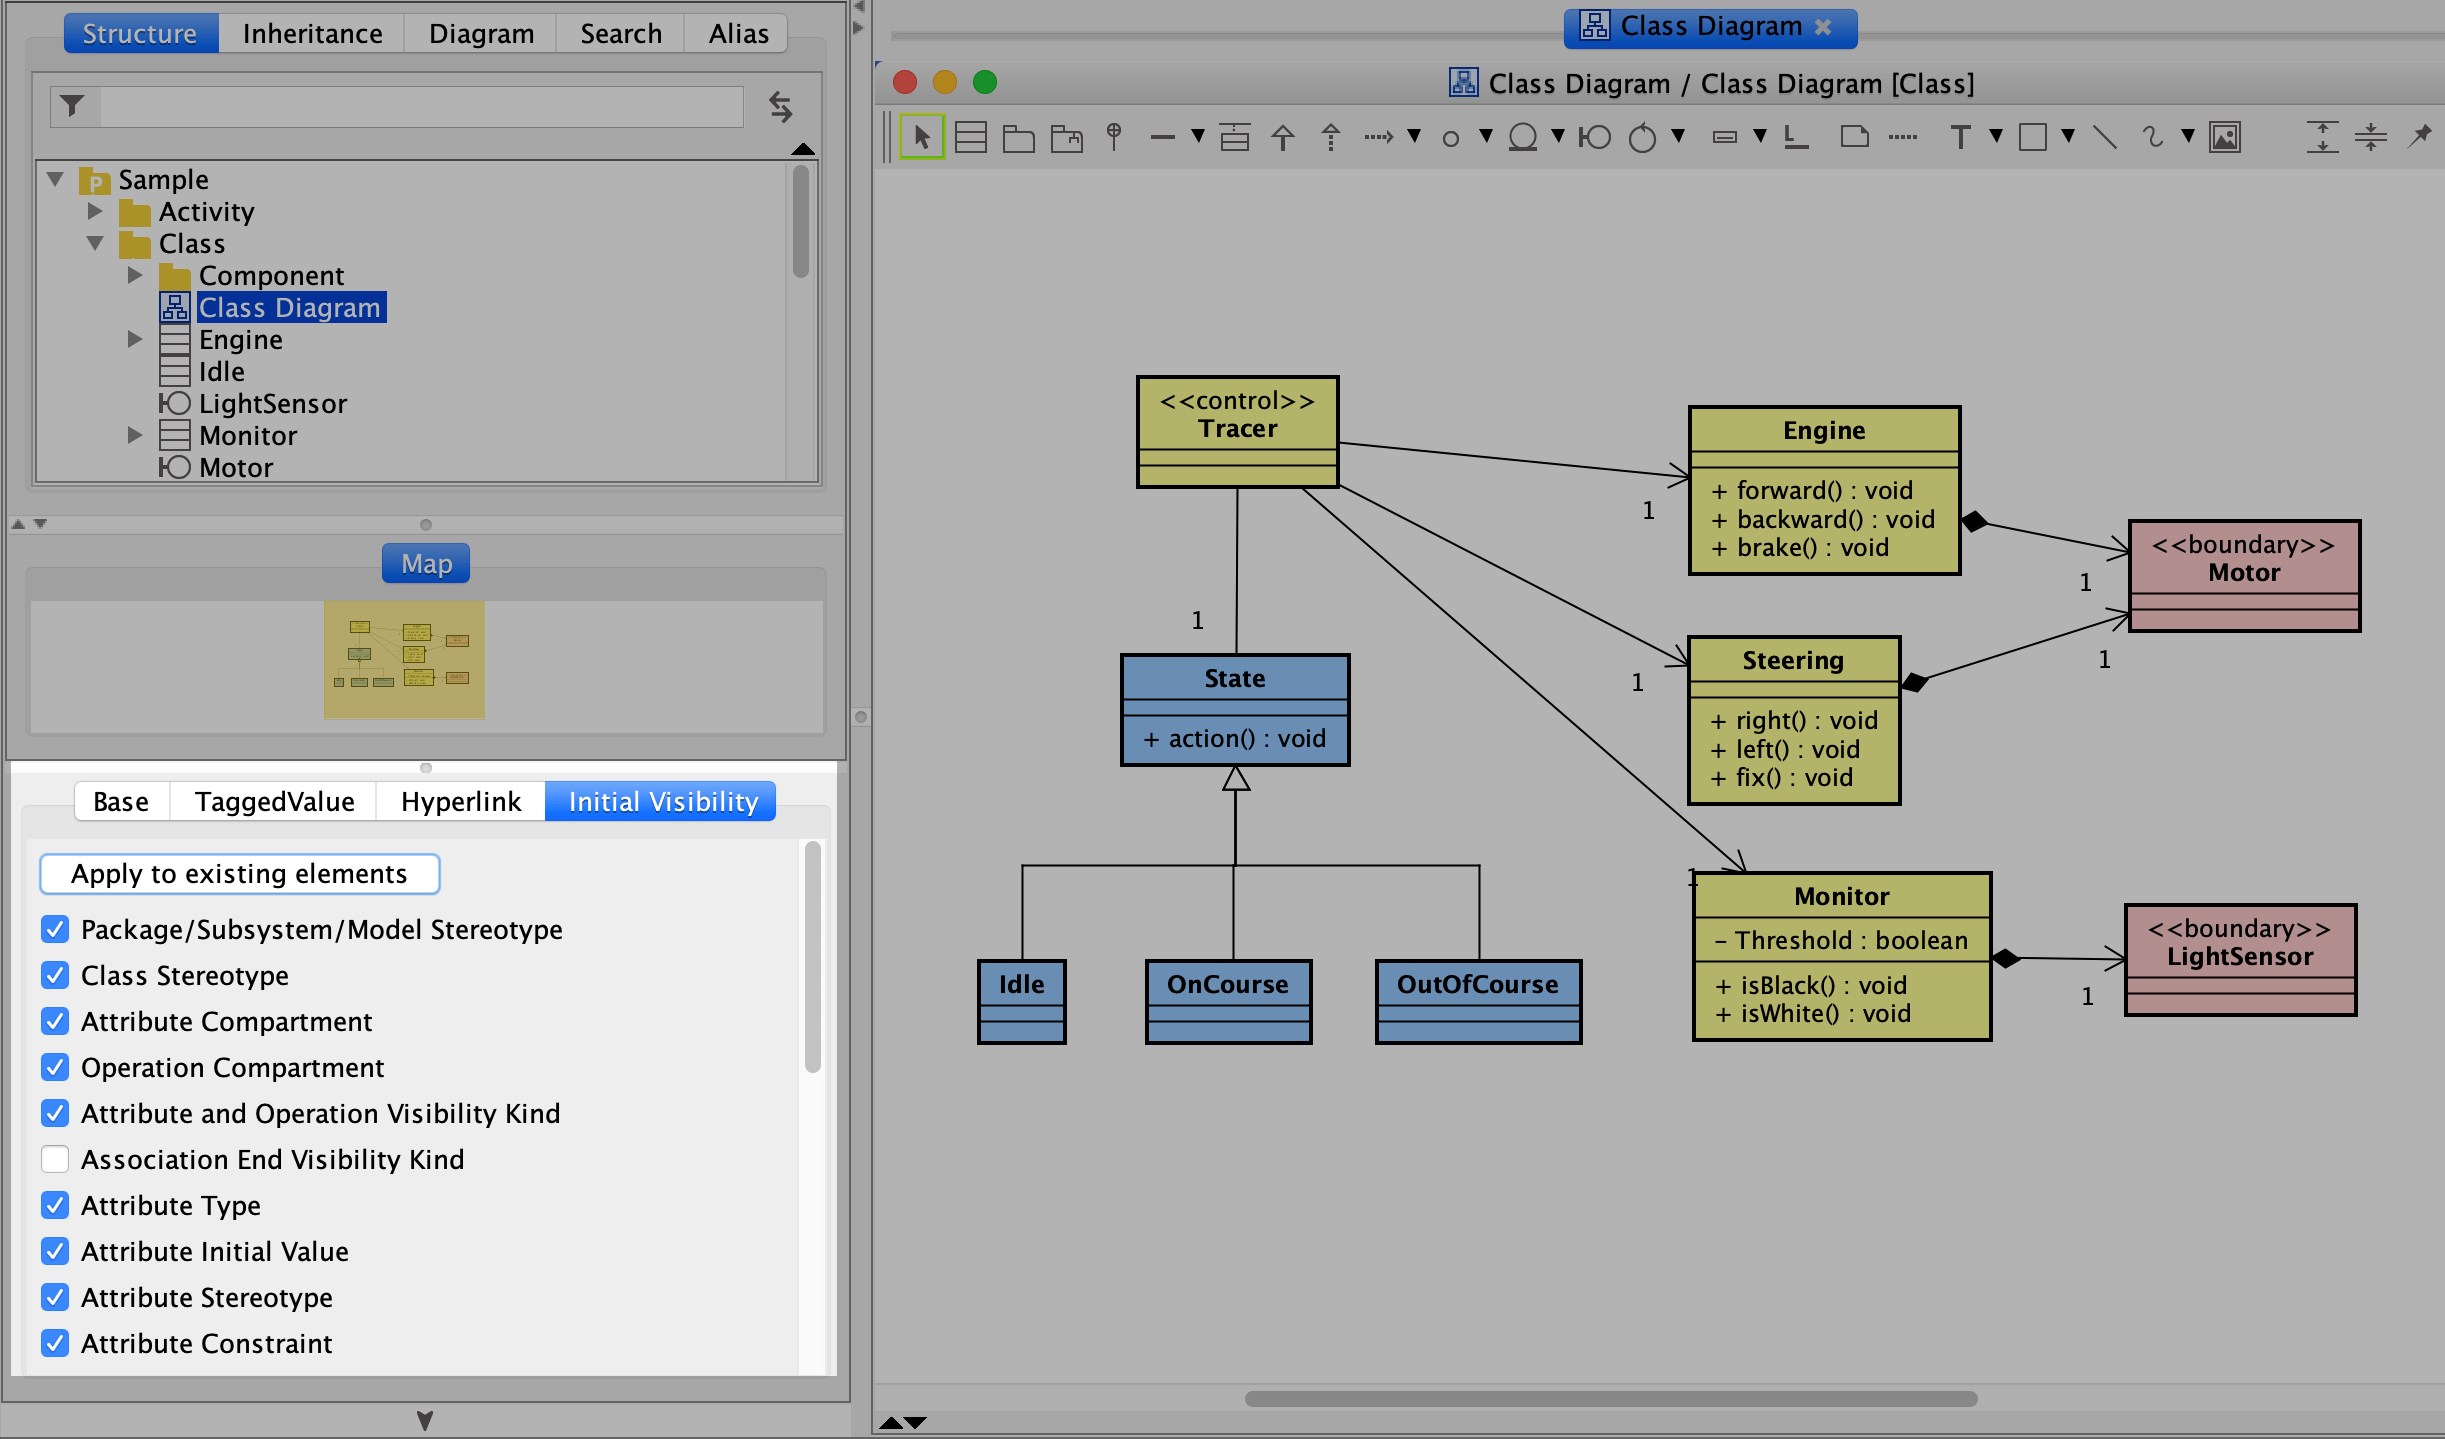 Initial Visibility in Class Diagram